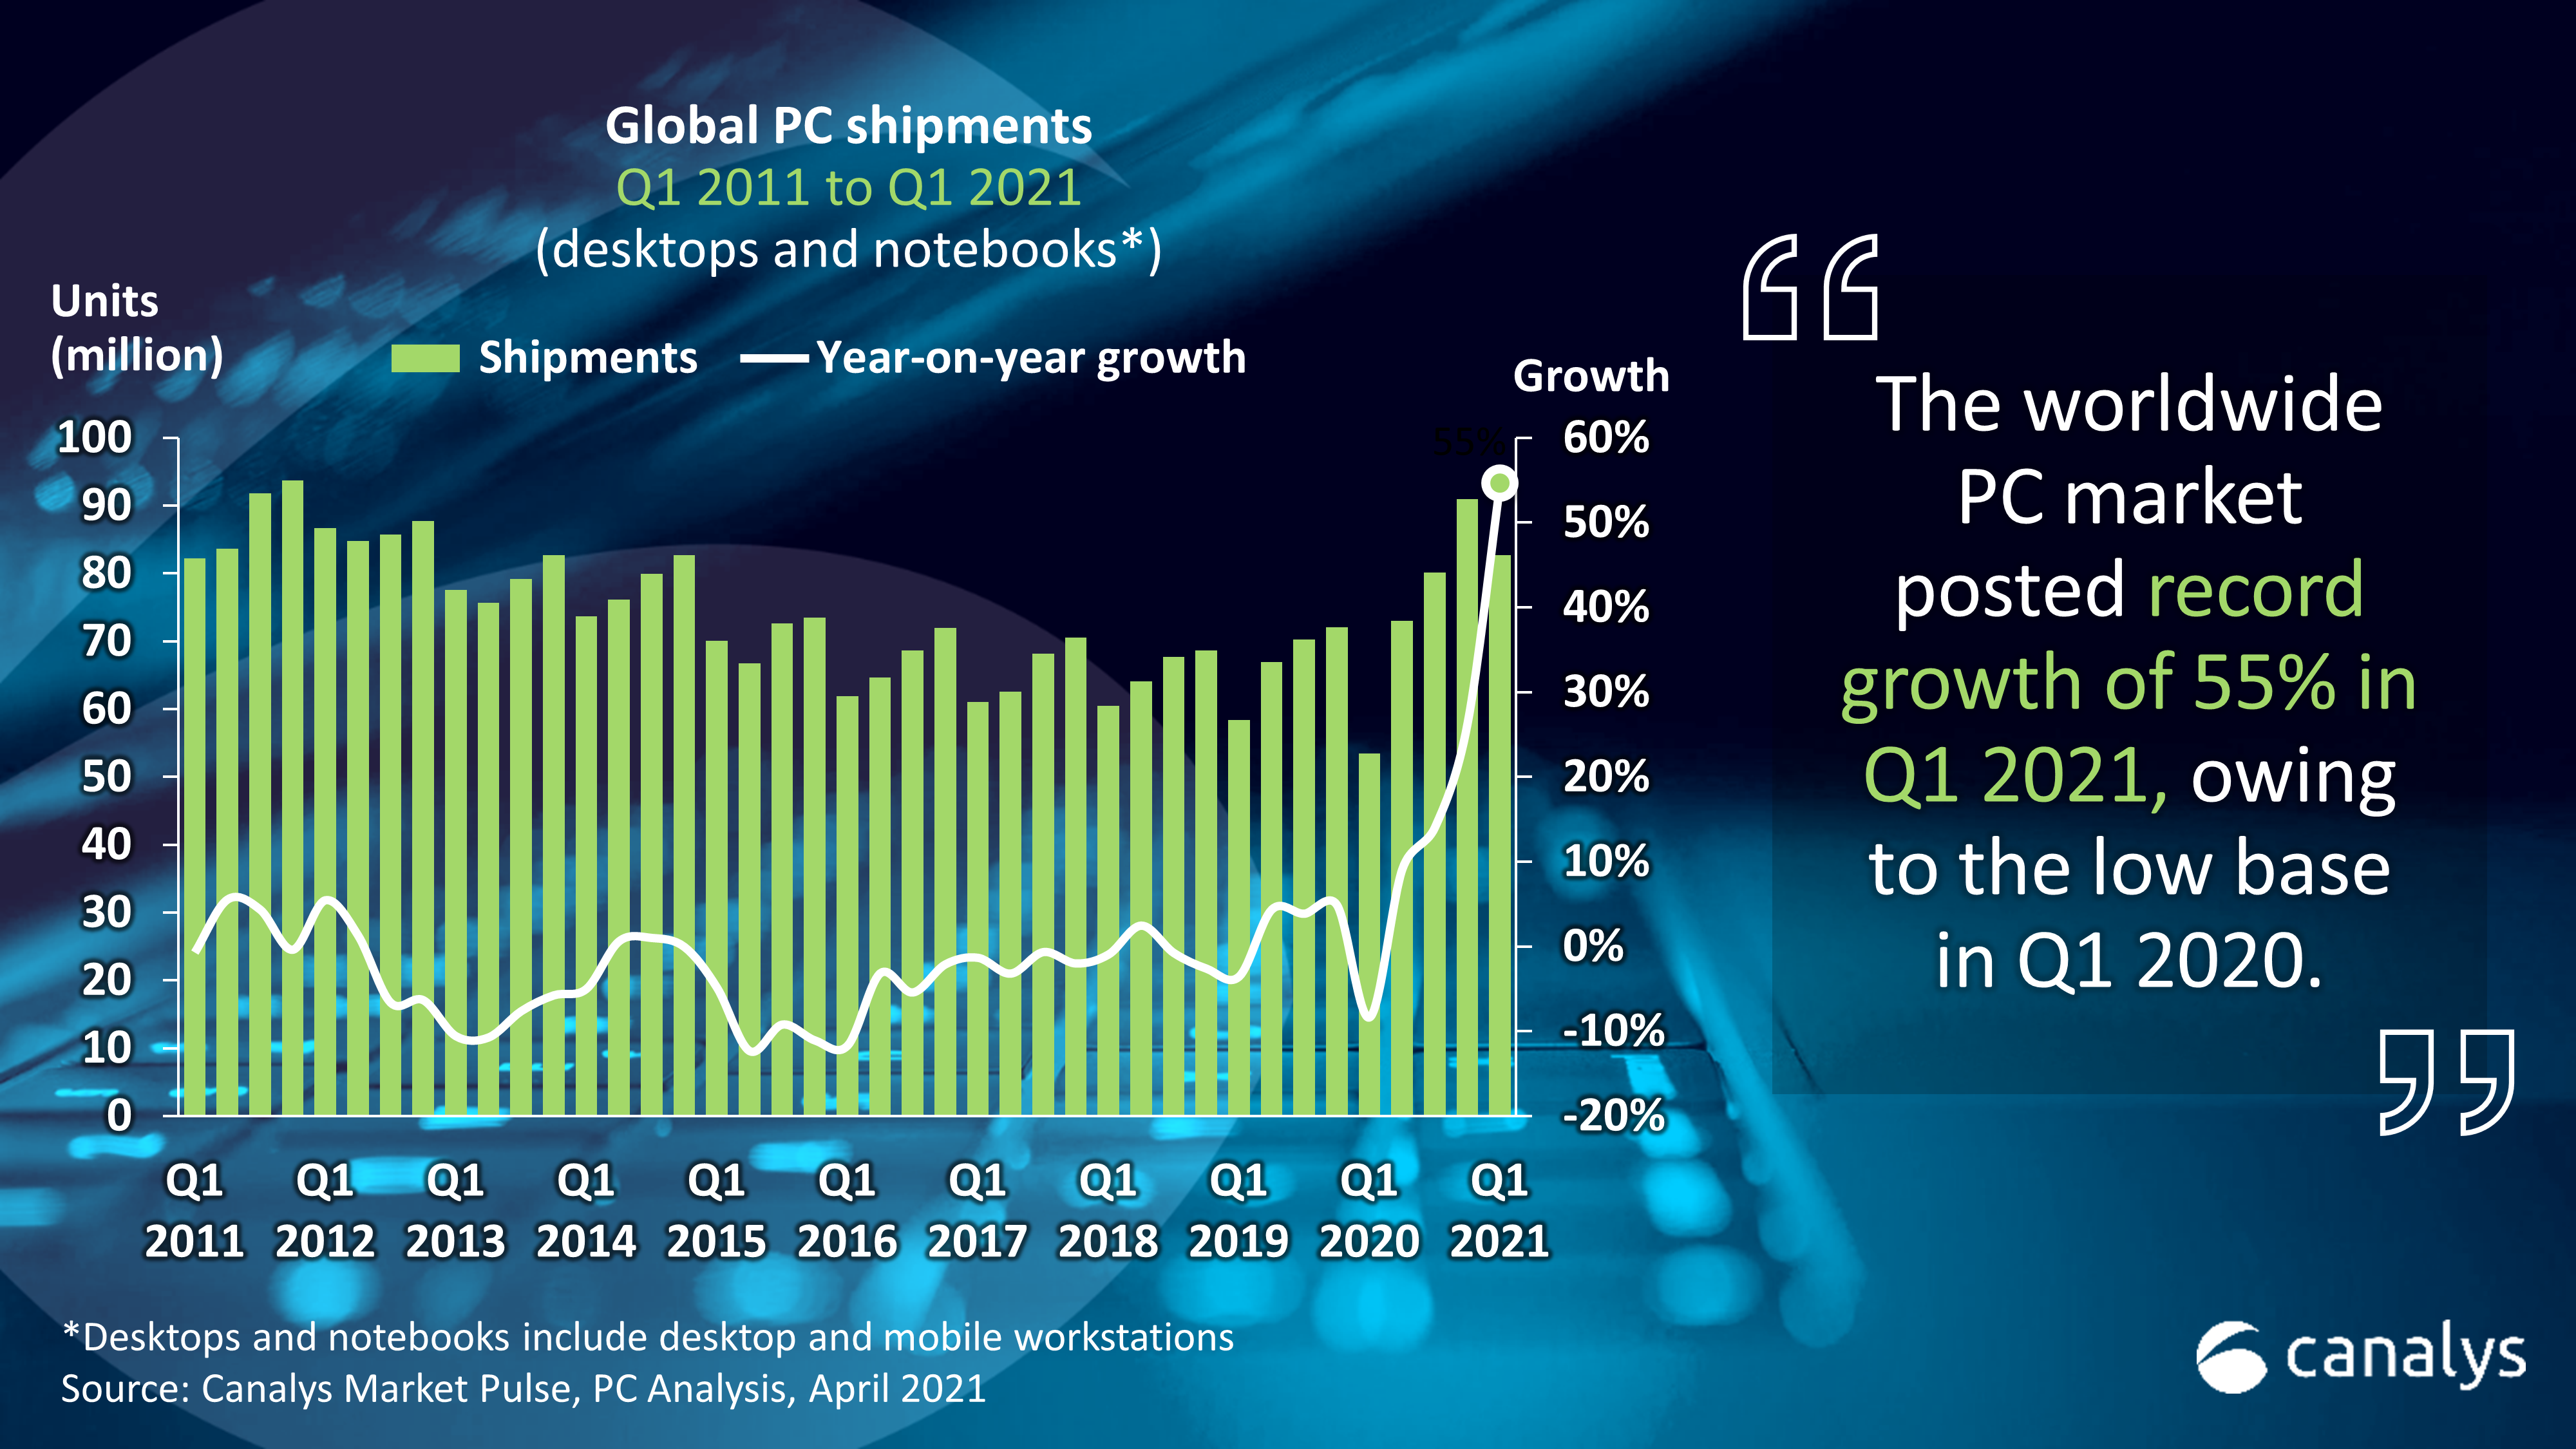 Canalys: Global PC market swells by 55% in Q1 2021 to 82.7 million